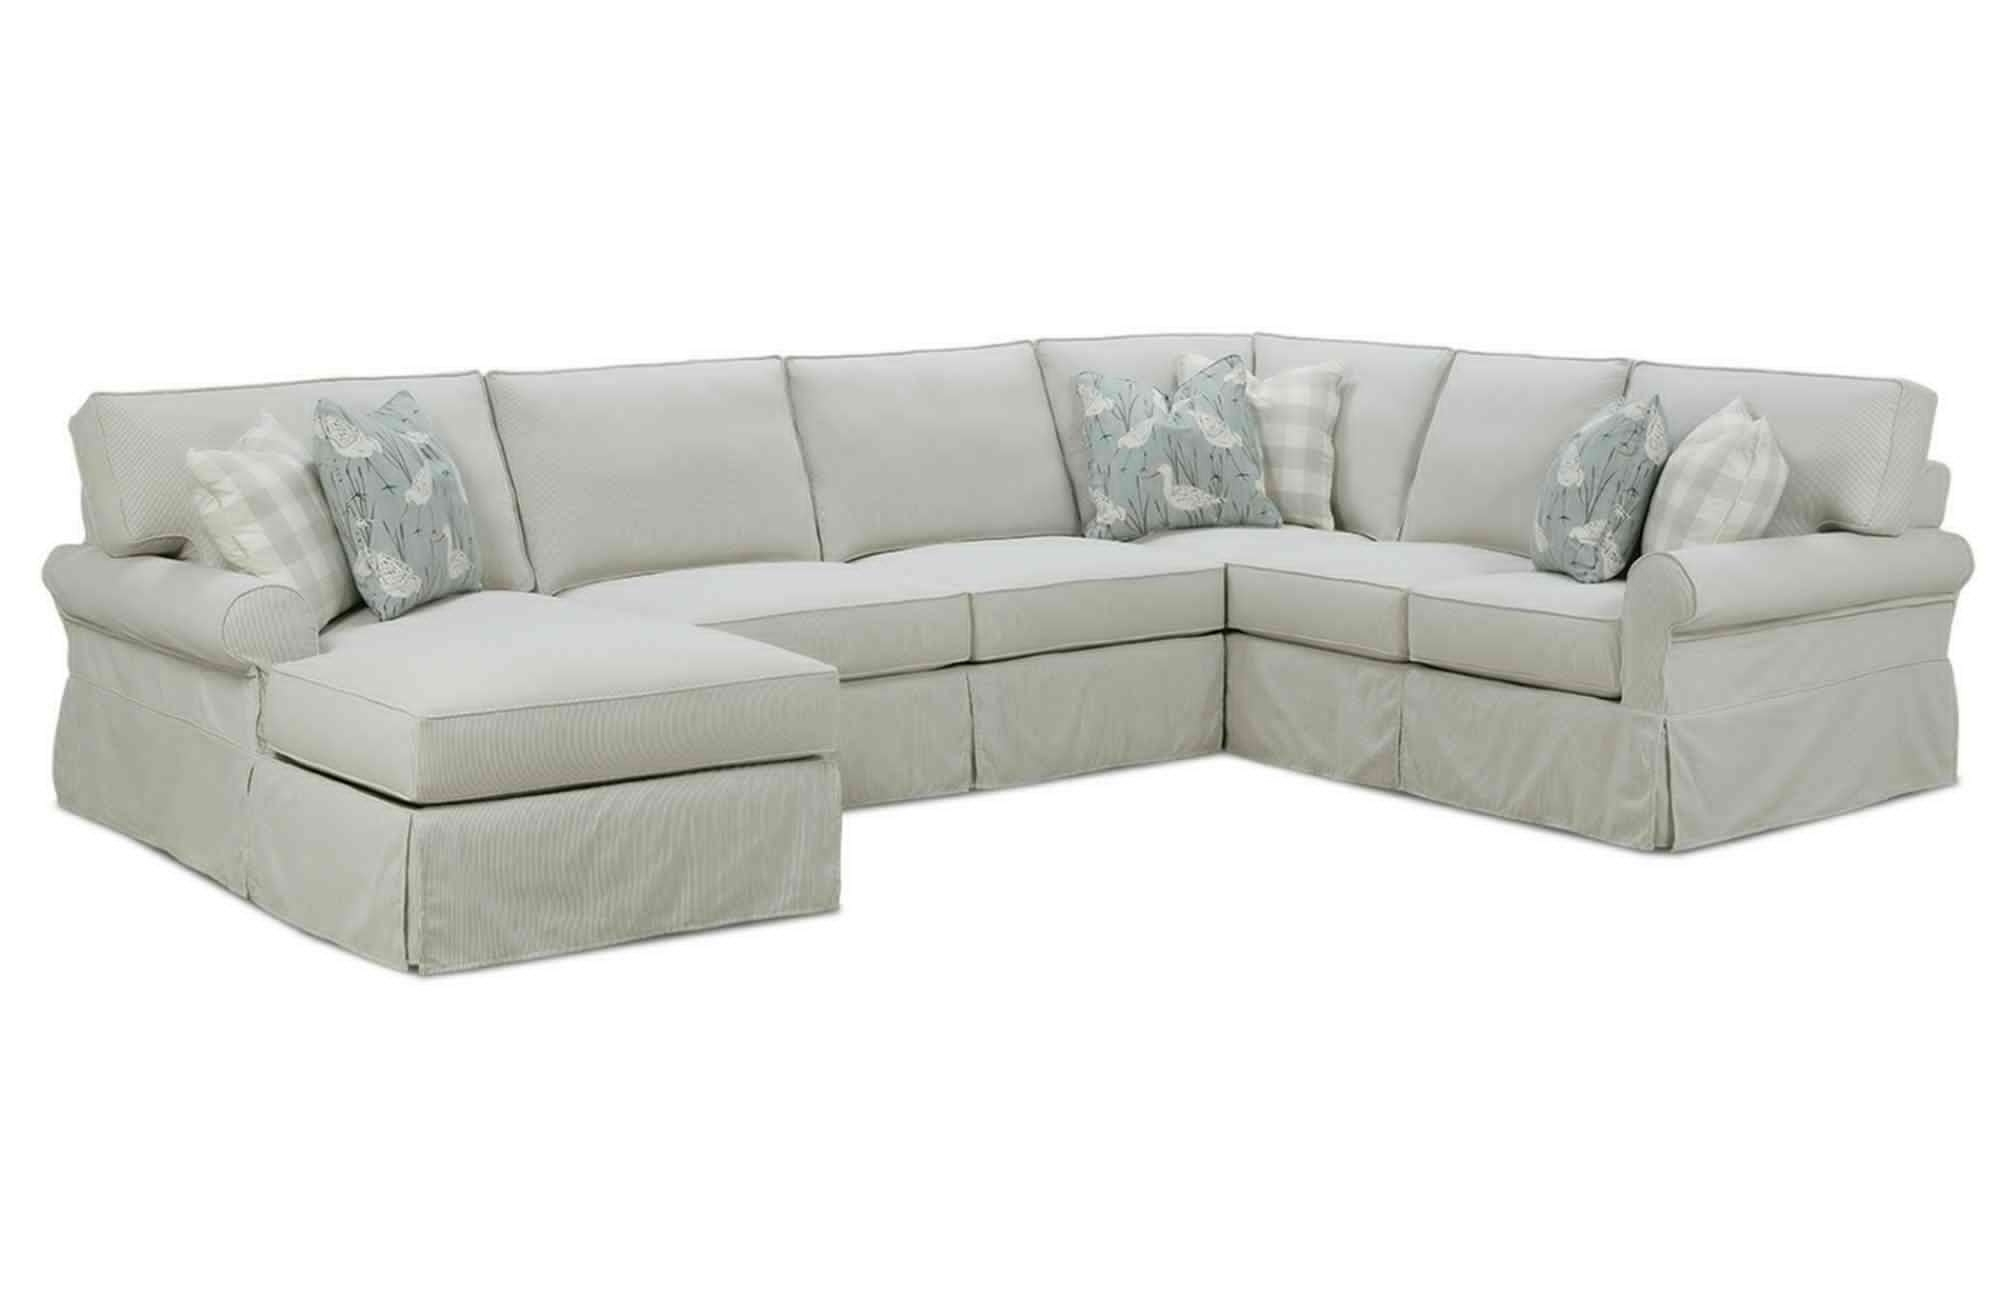 Sectional Sofas In Hyderabad Inside Fashionable Sectional Sofa Design: Wonderful List Of Deep Sectional Sofa (View 16 of 20)